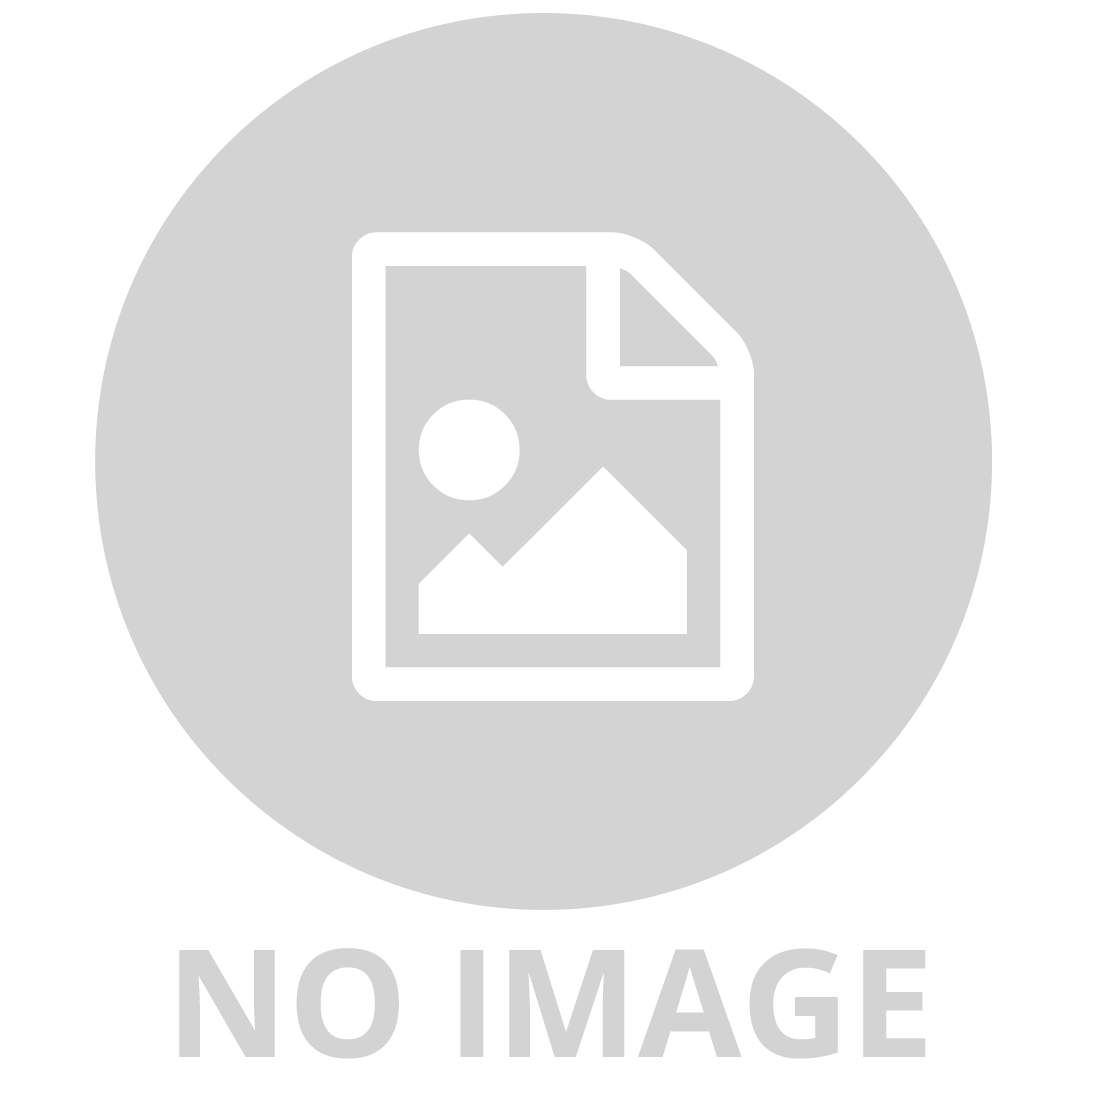 TIKK TOKK RESIN CHAIR YELLOW